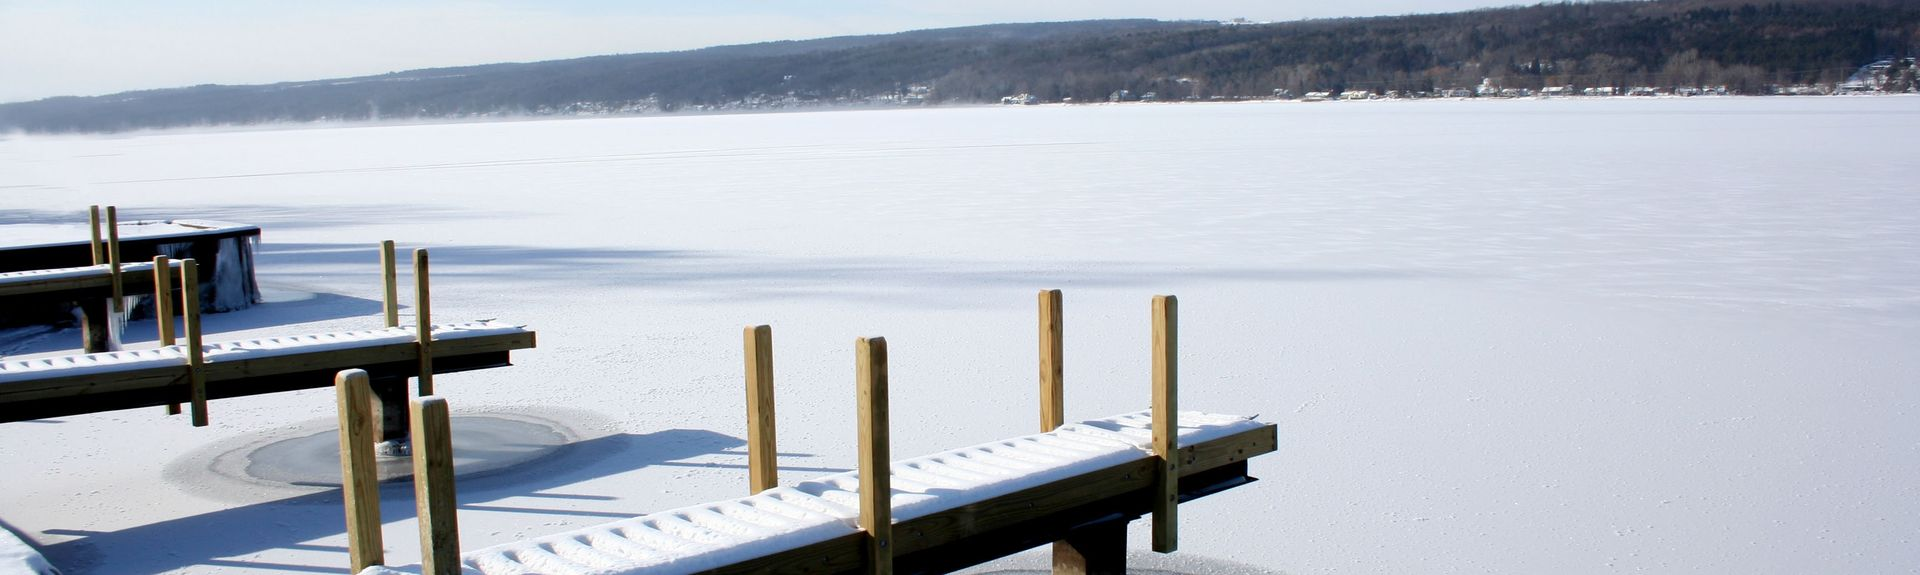 Keuka Lake, New York, United States